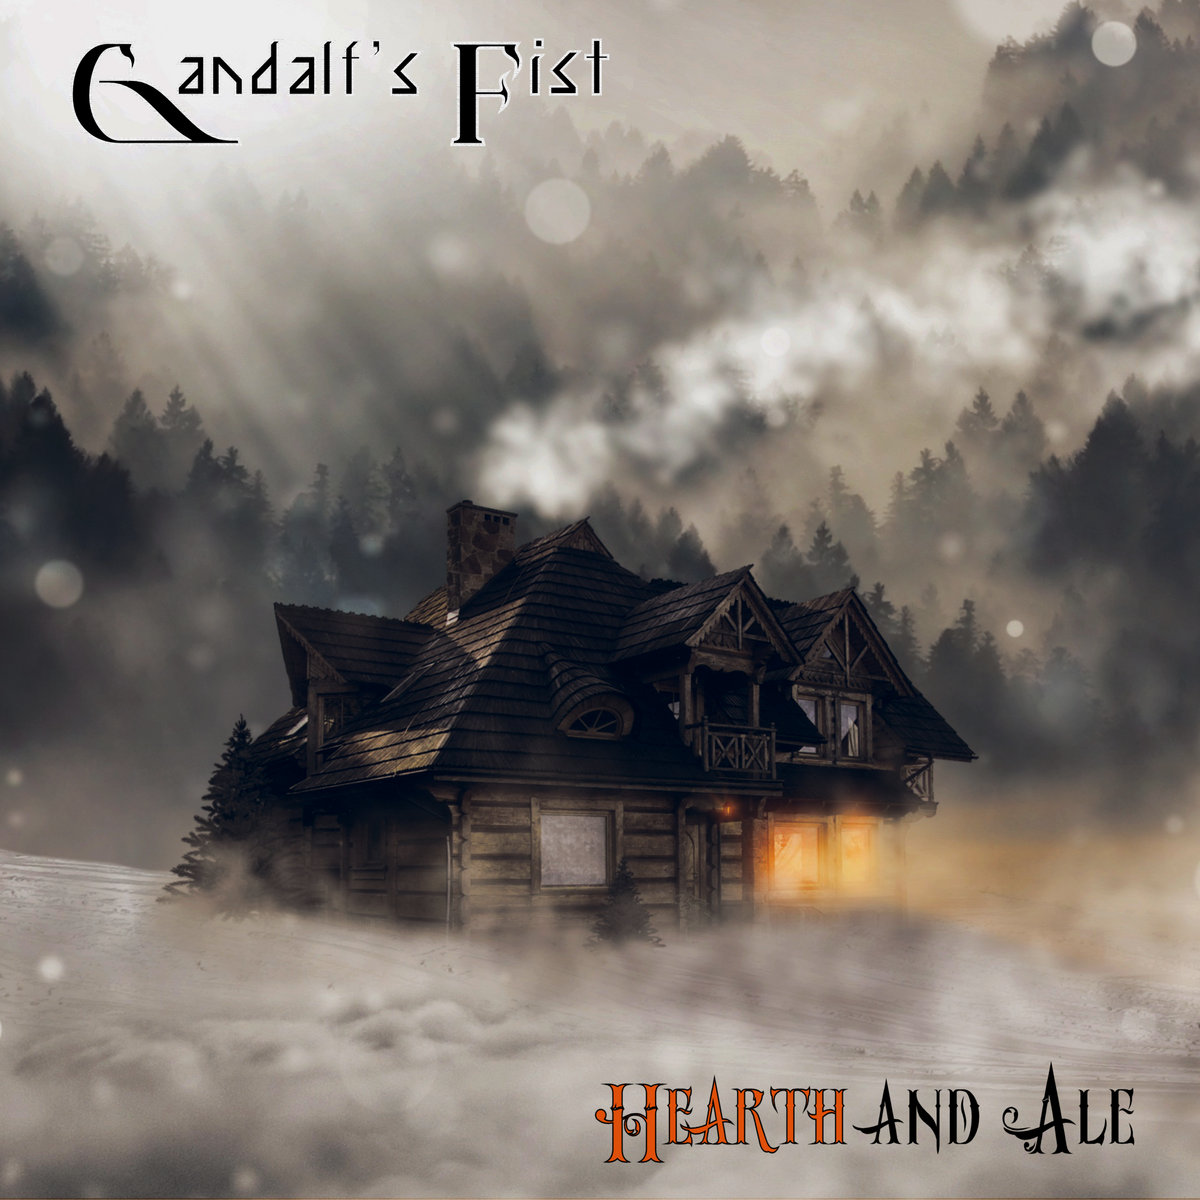 Hearth and Ale by Gandalf's Fist